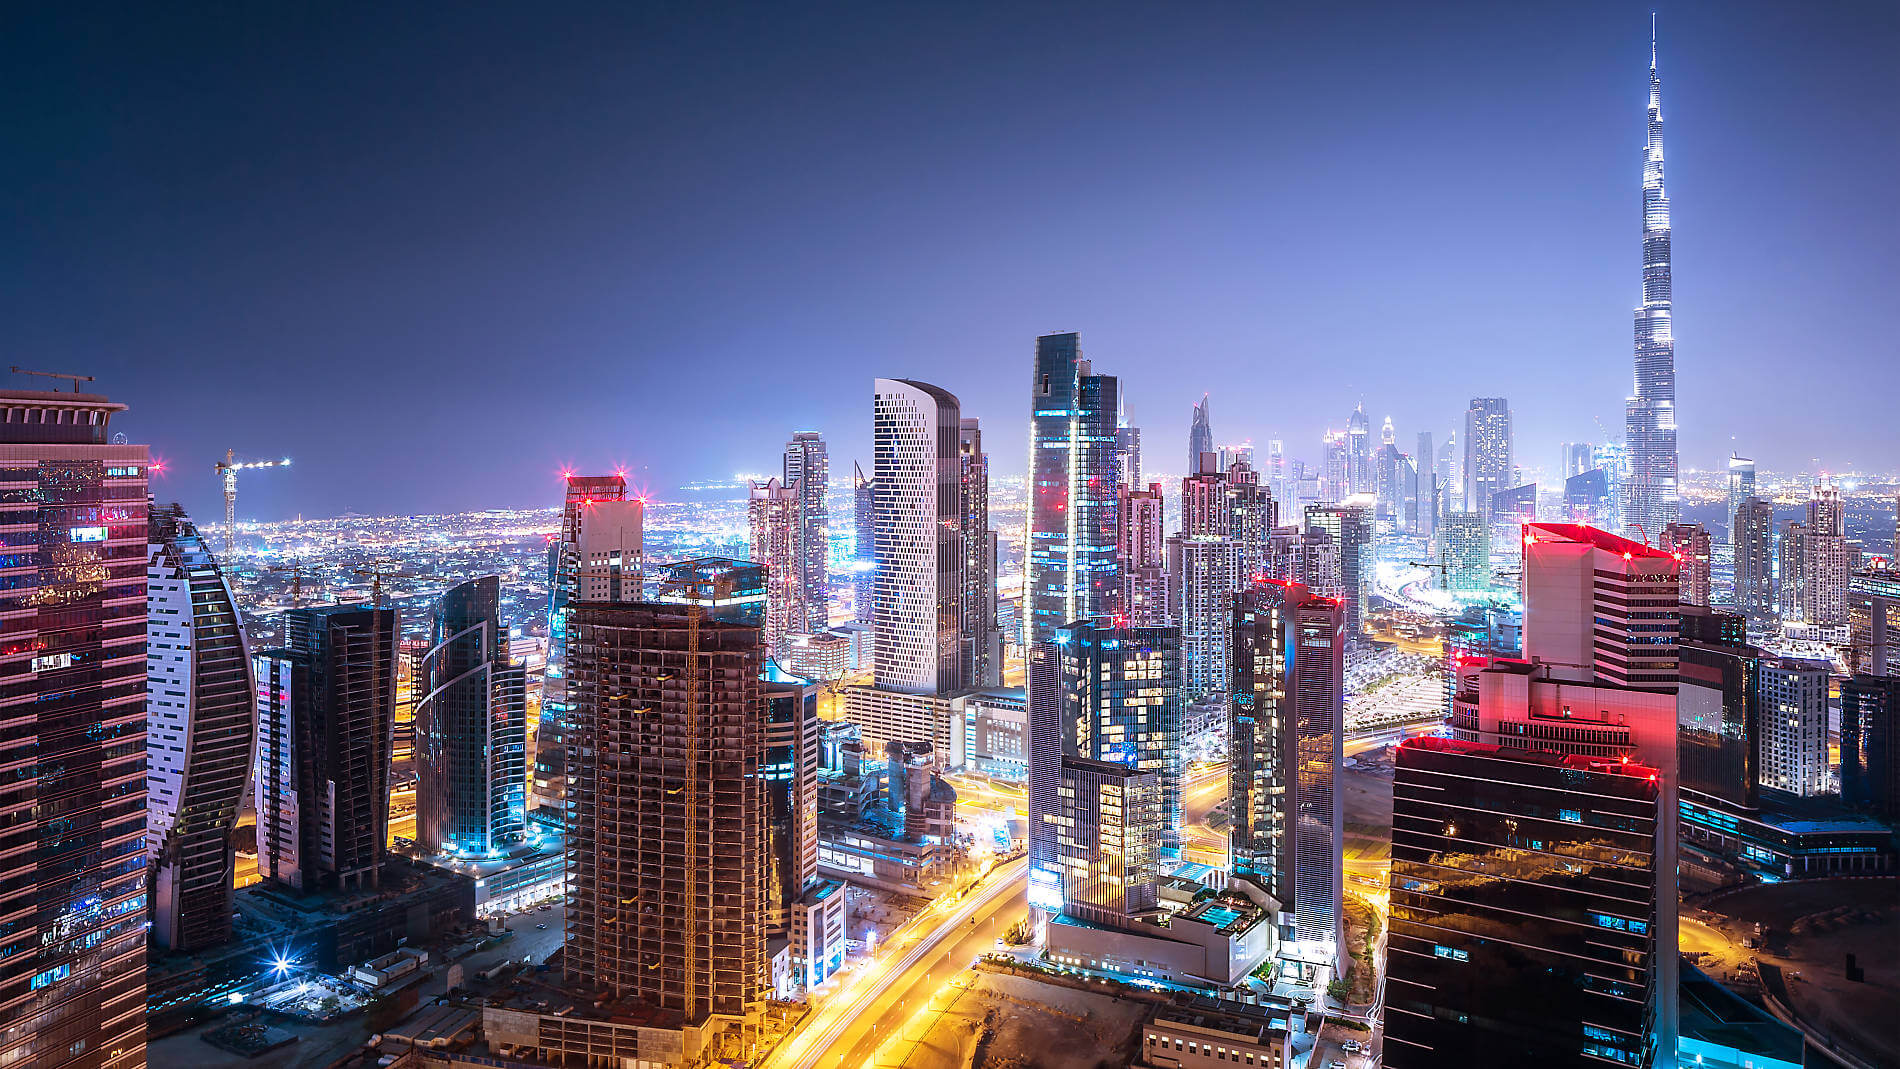 View of Dubai city at night